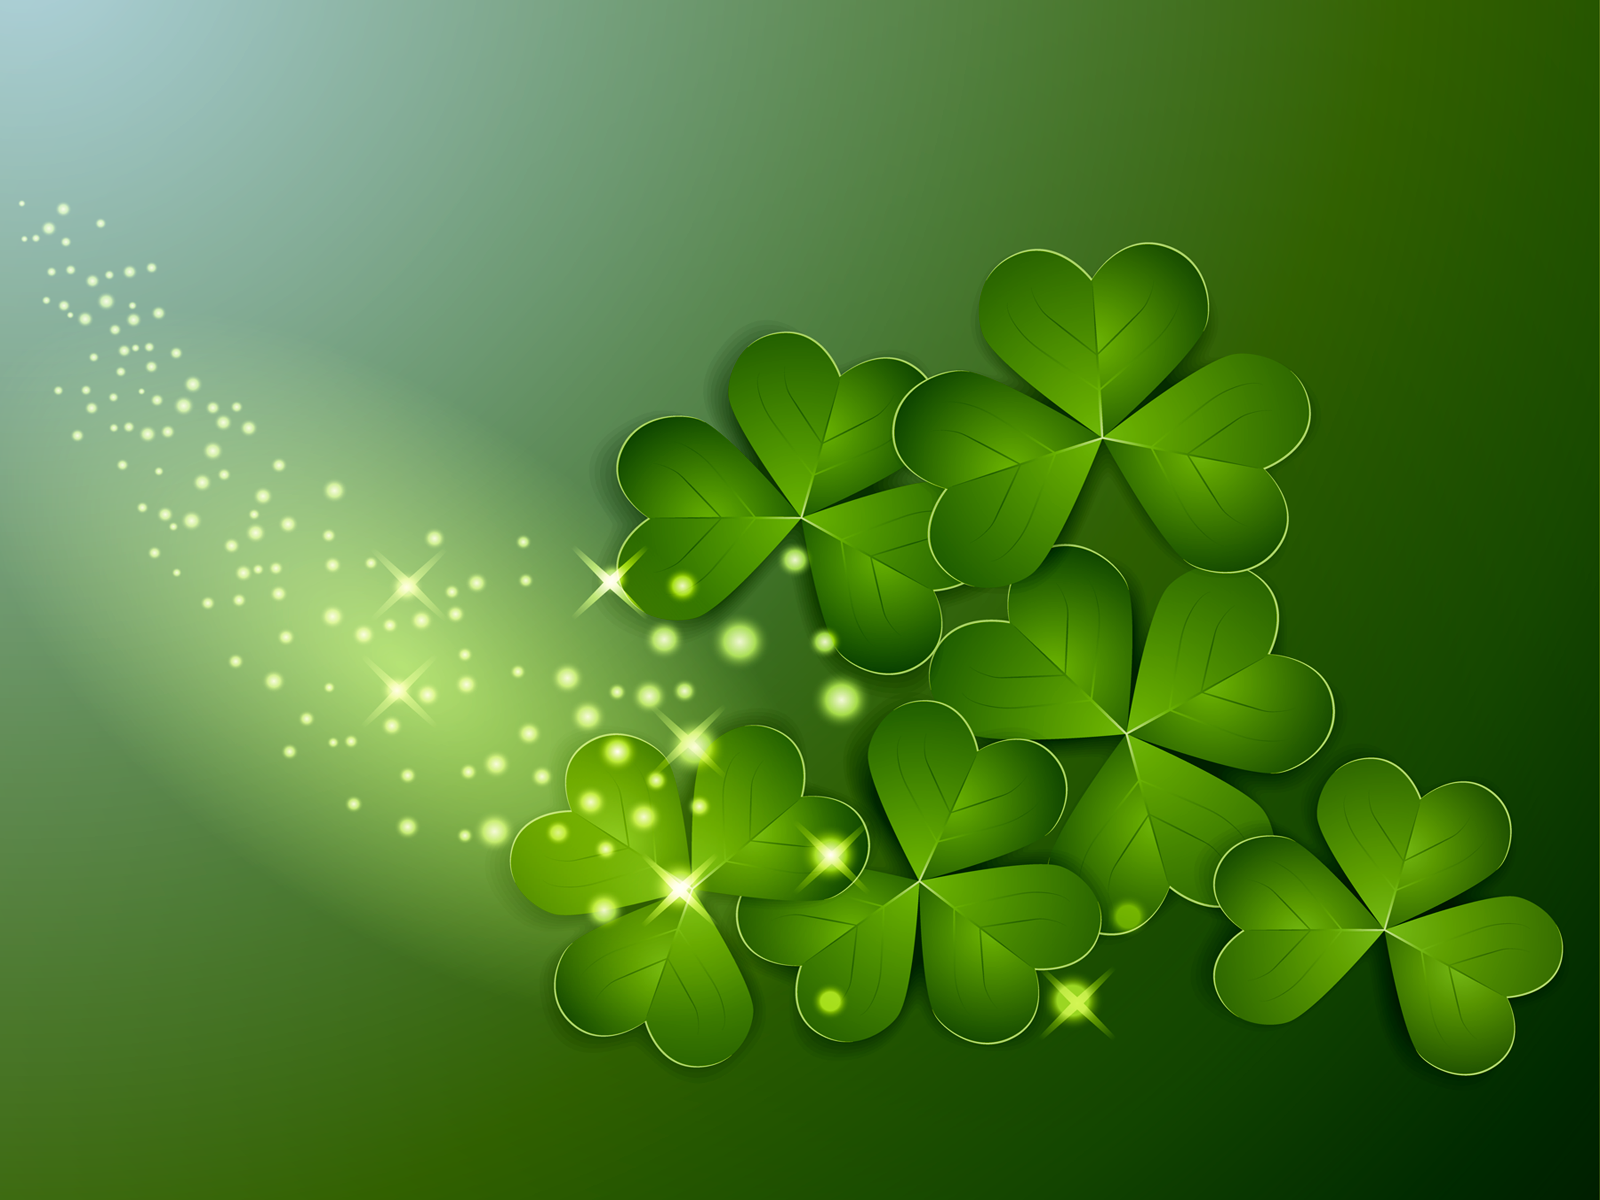 St Patricks Day Wallpaper Free